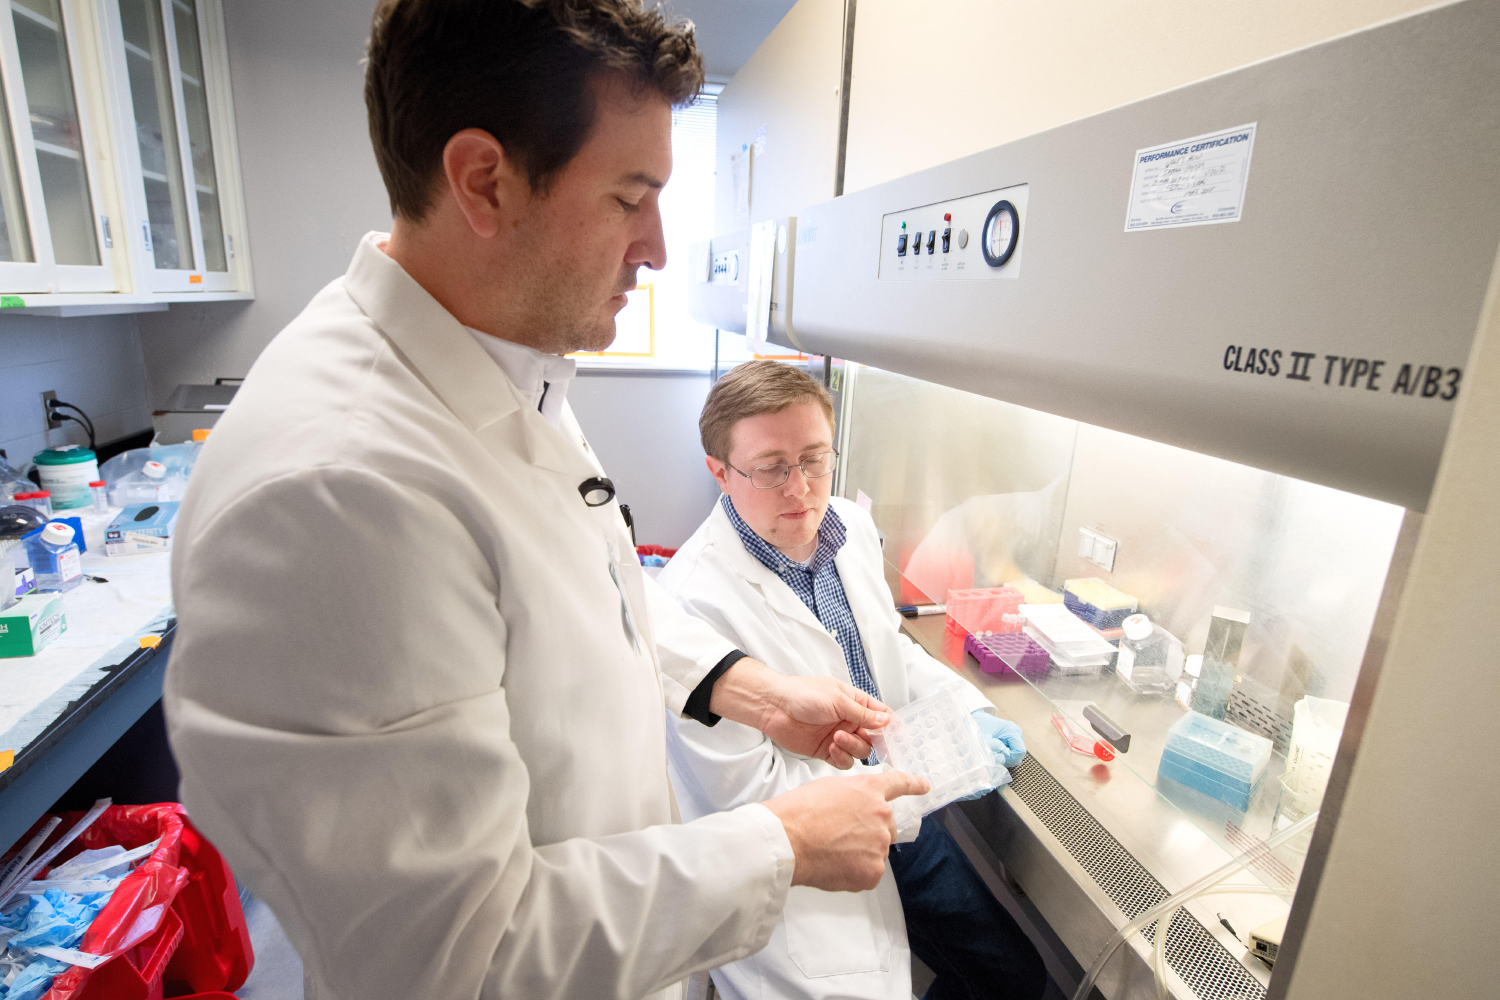 Ethan J Anderson , PhDAssociate Professor, Department of Pharmaceutical Sciences and Experimental Therapeutics and his lab that conducts Translational Pharmacology and basic science research in the College of Pharmacy Building.